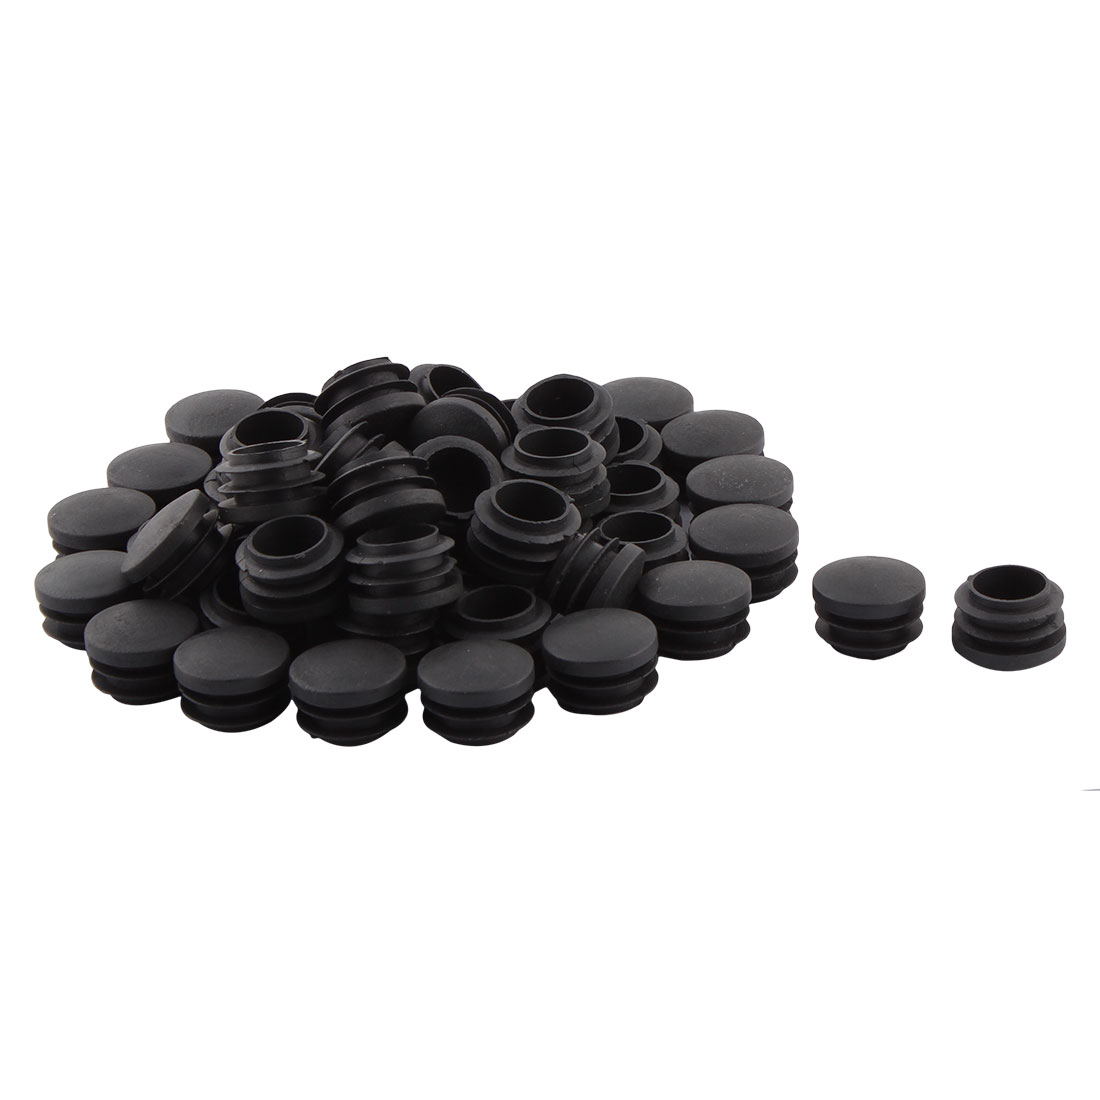 Home Office Plastic Round Shaped Table Chair Leg Tube Pipe Insert Black 28mm Dia 50 PCS